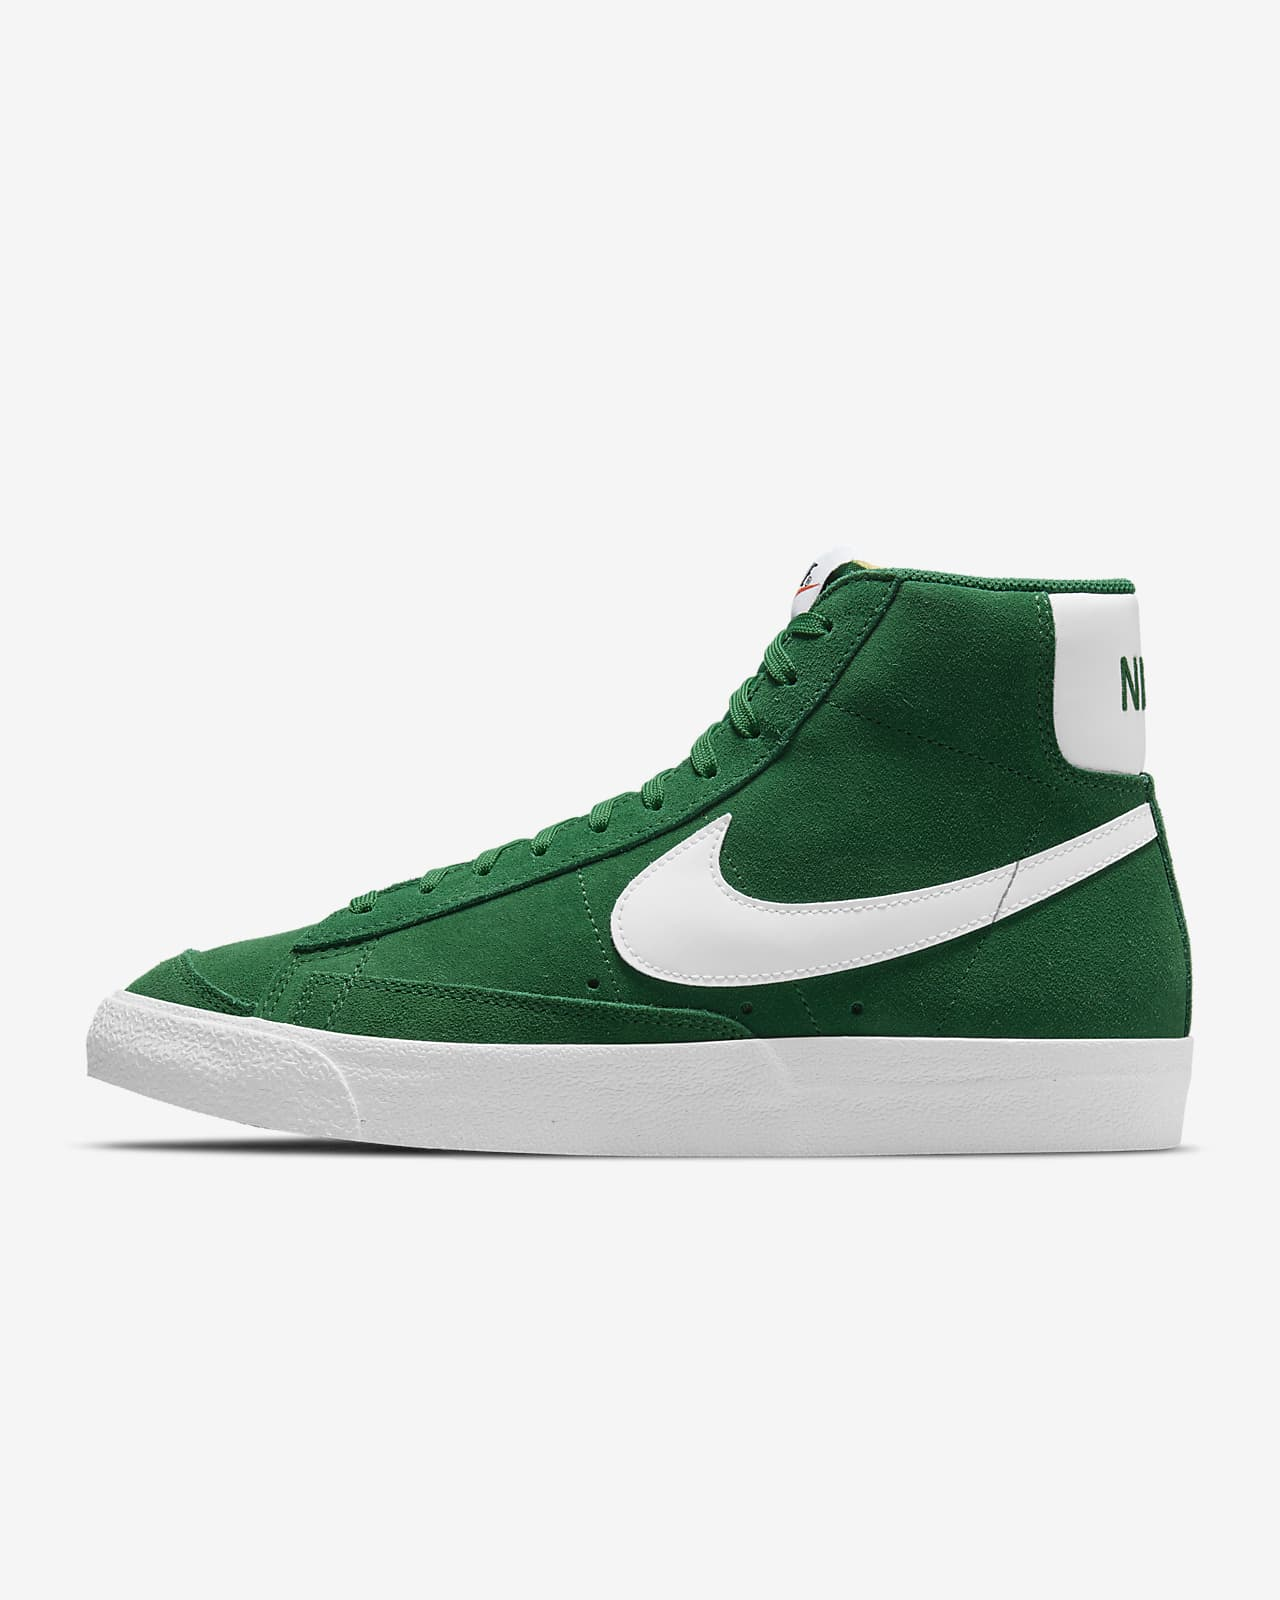 Nike Blazer Mid '77 Suede Shoes